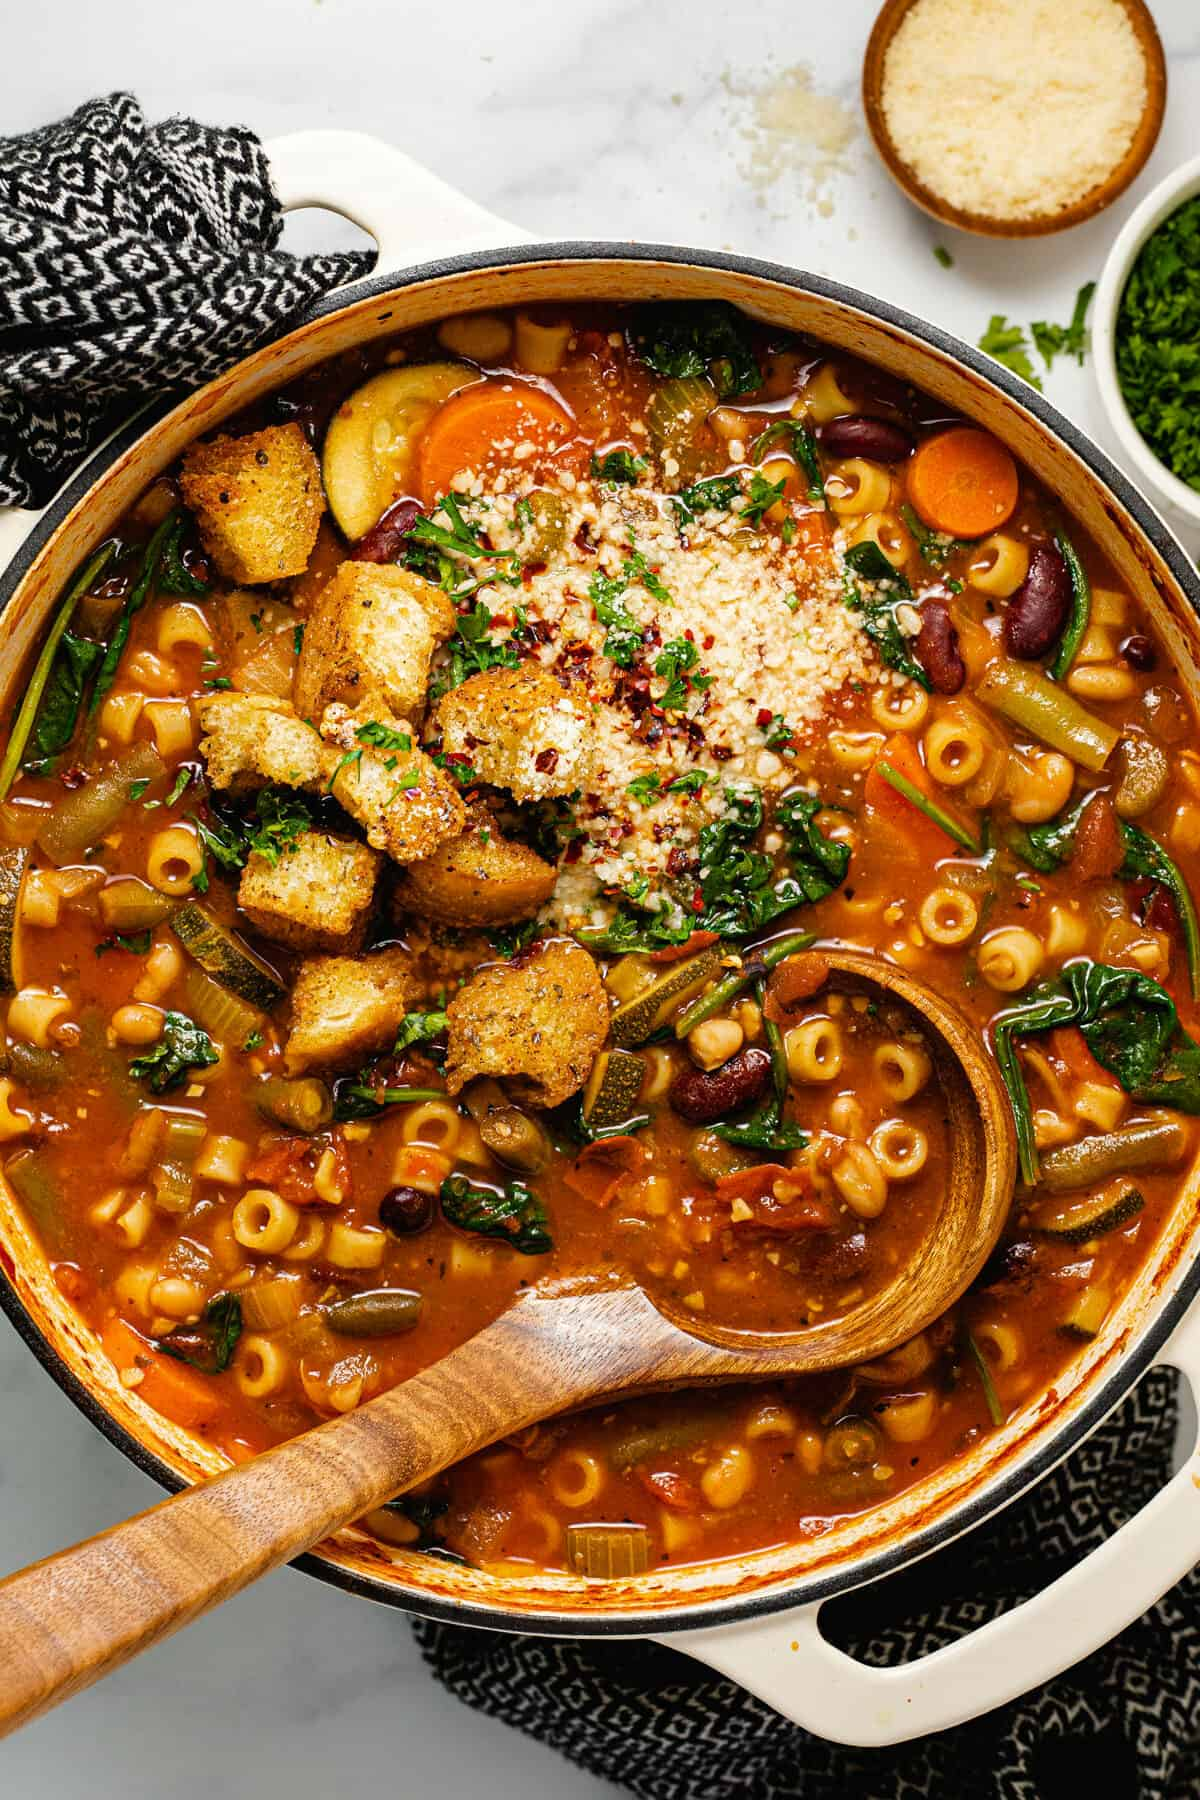 Overhead shot of a pot of minestrone soup garnished with croutons and Parmesan